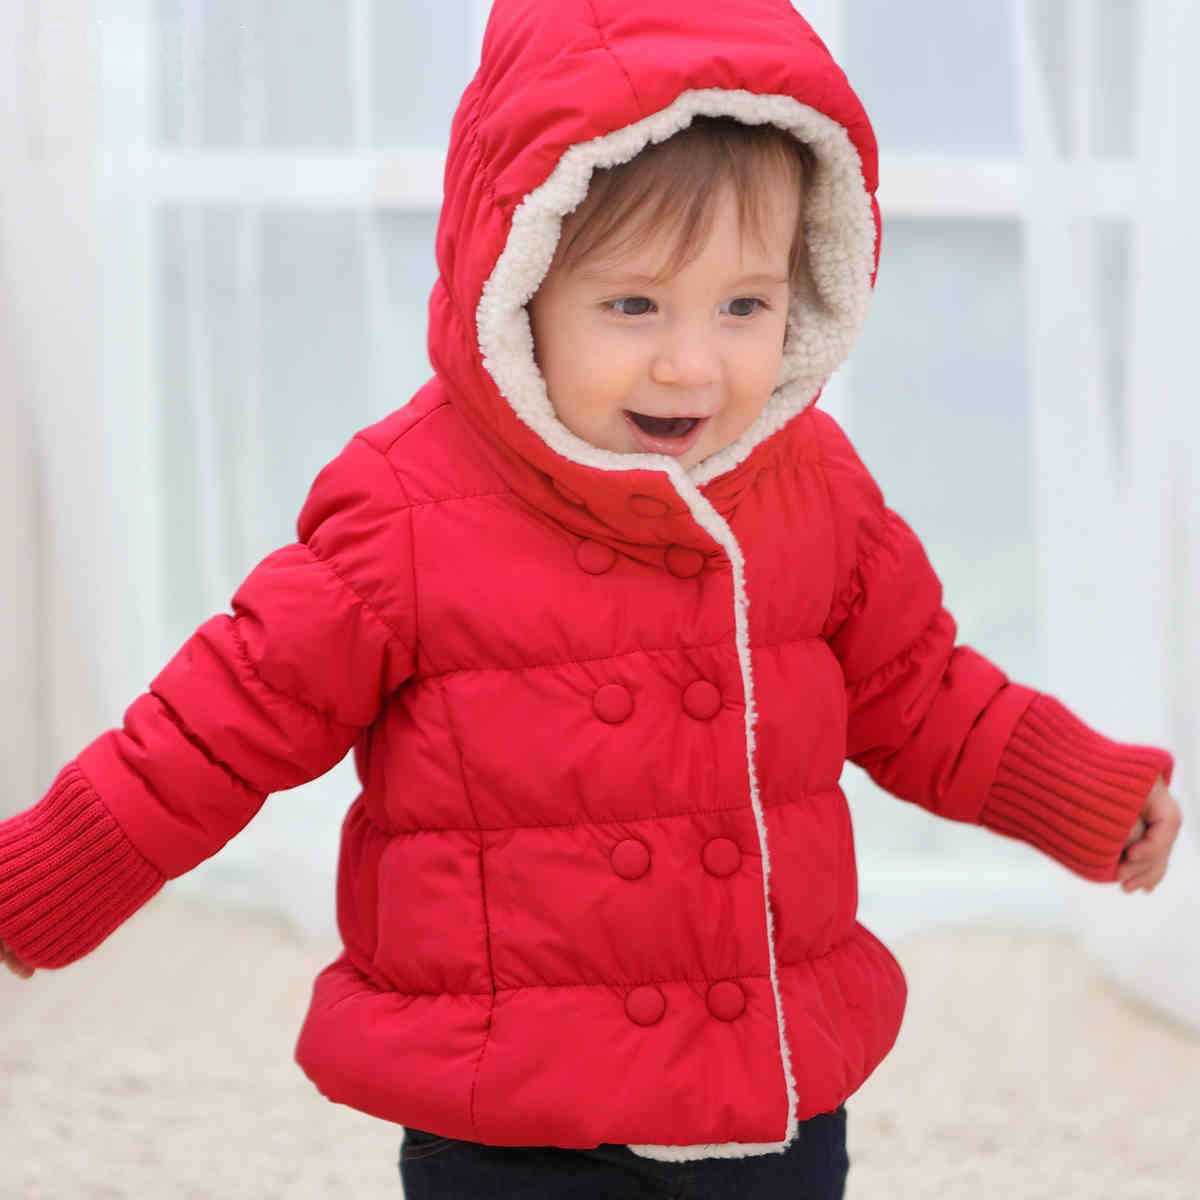 New Europe and American style infant baby girl thickened fleece hooded padded coat jacket boys winter outwear coat(China (Mainland))